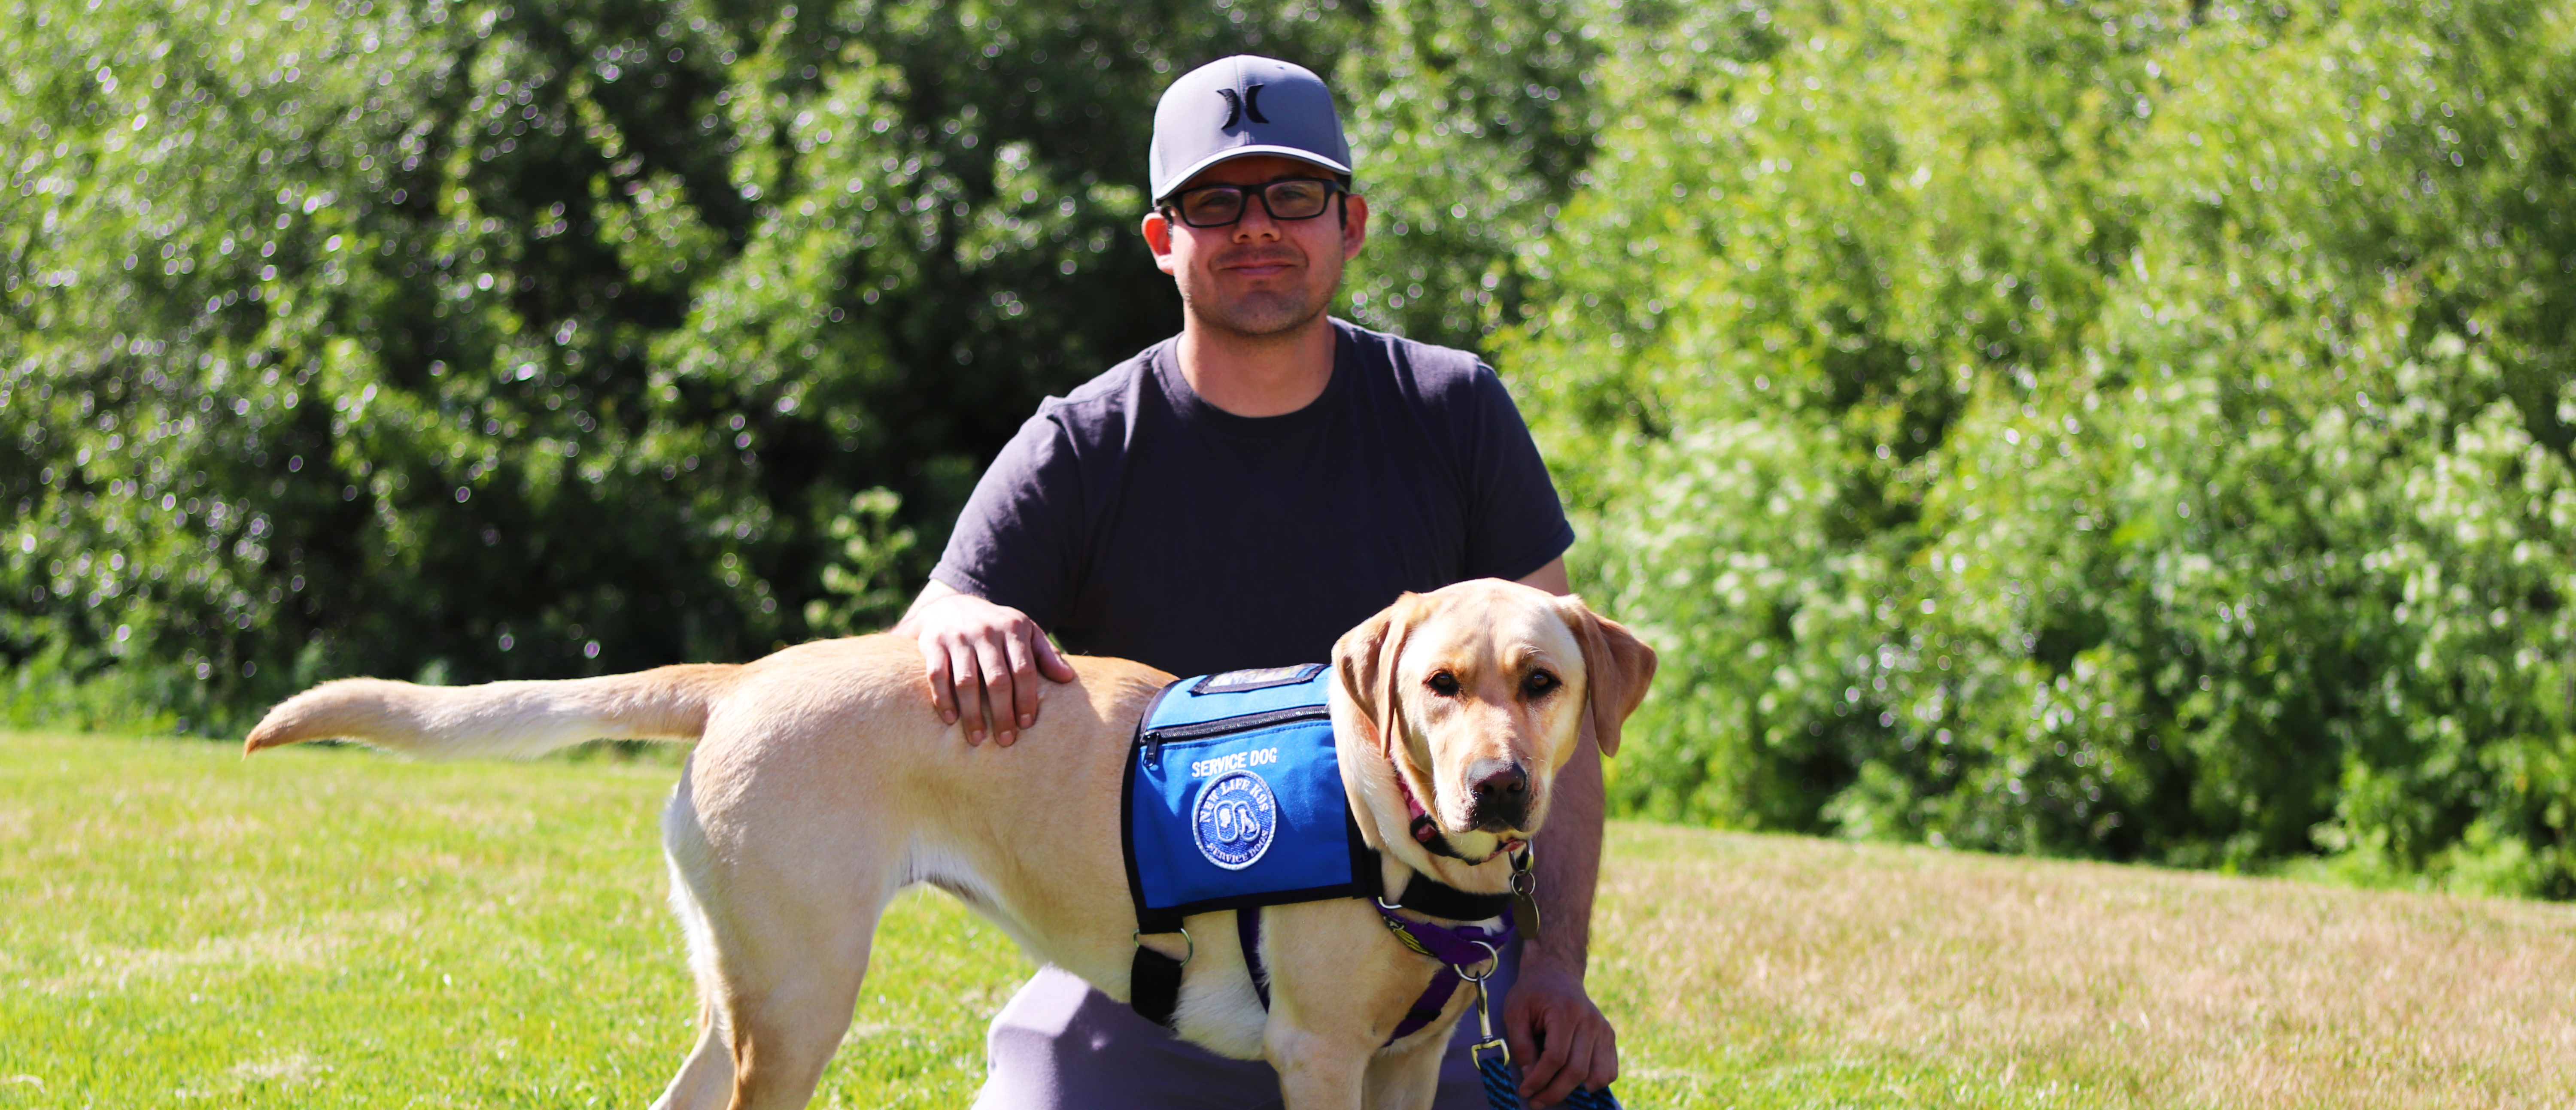 Apply for a Service Dog